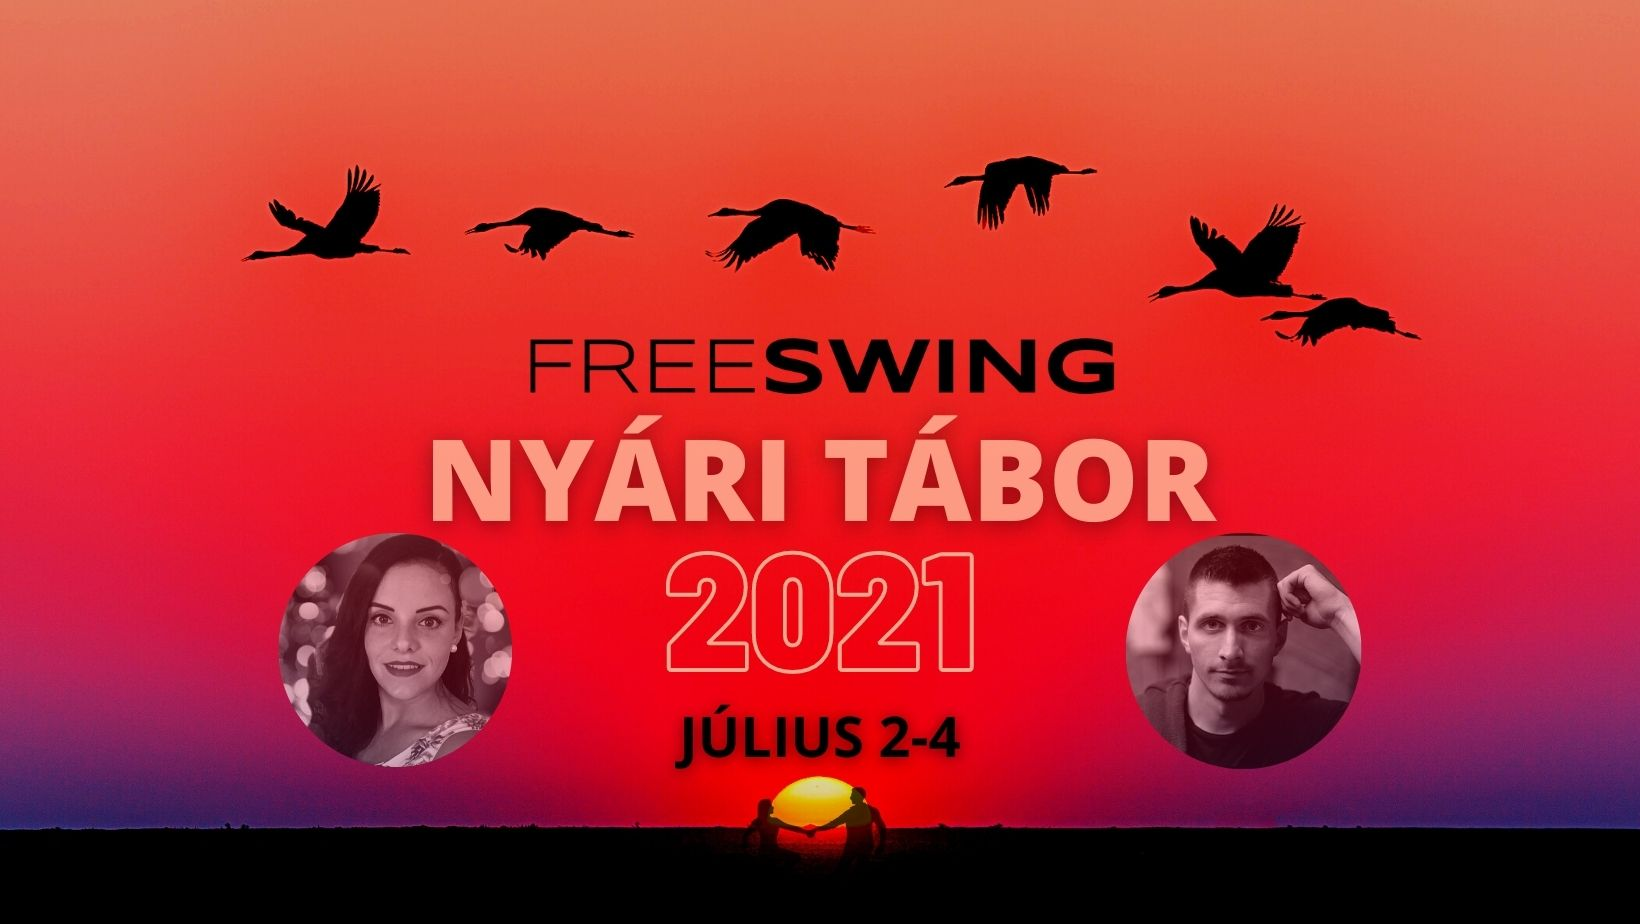 Freeswing West coast swing nyári tábor 2021